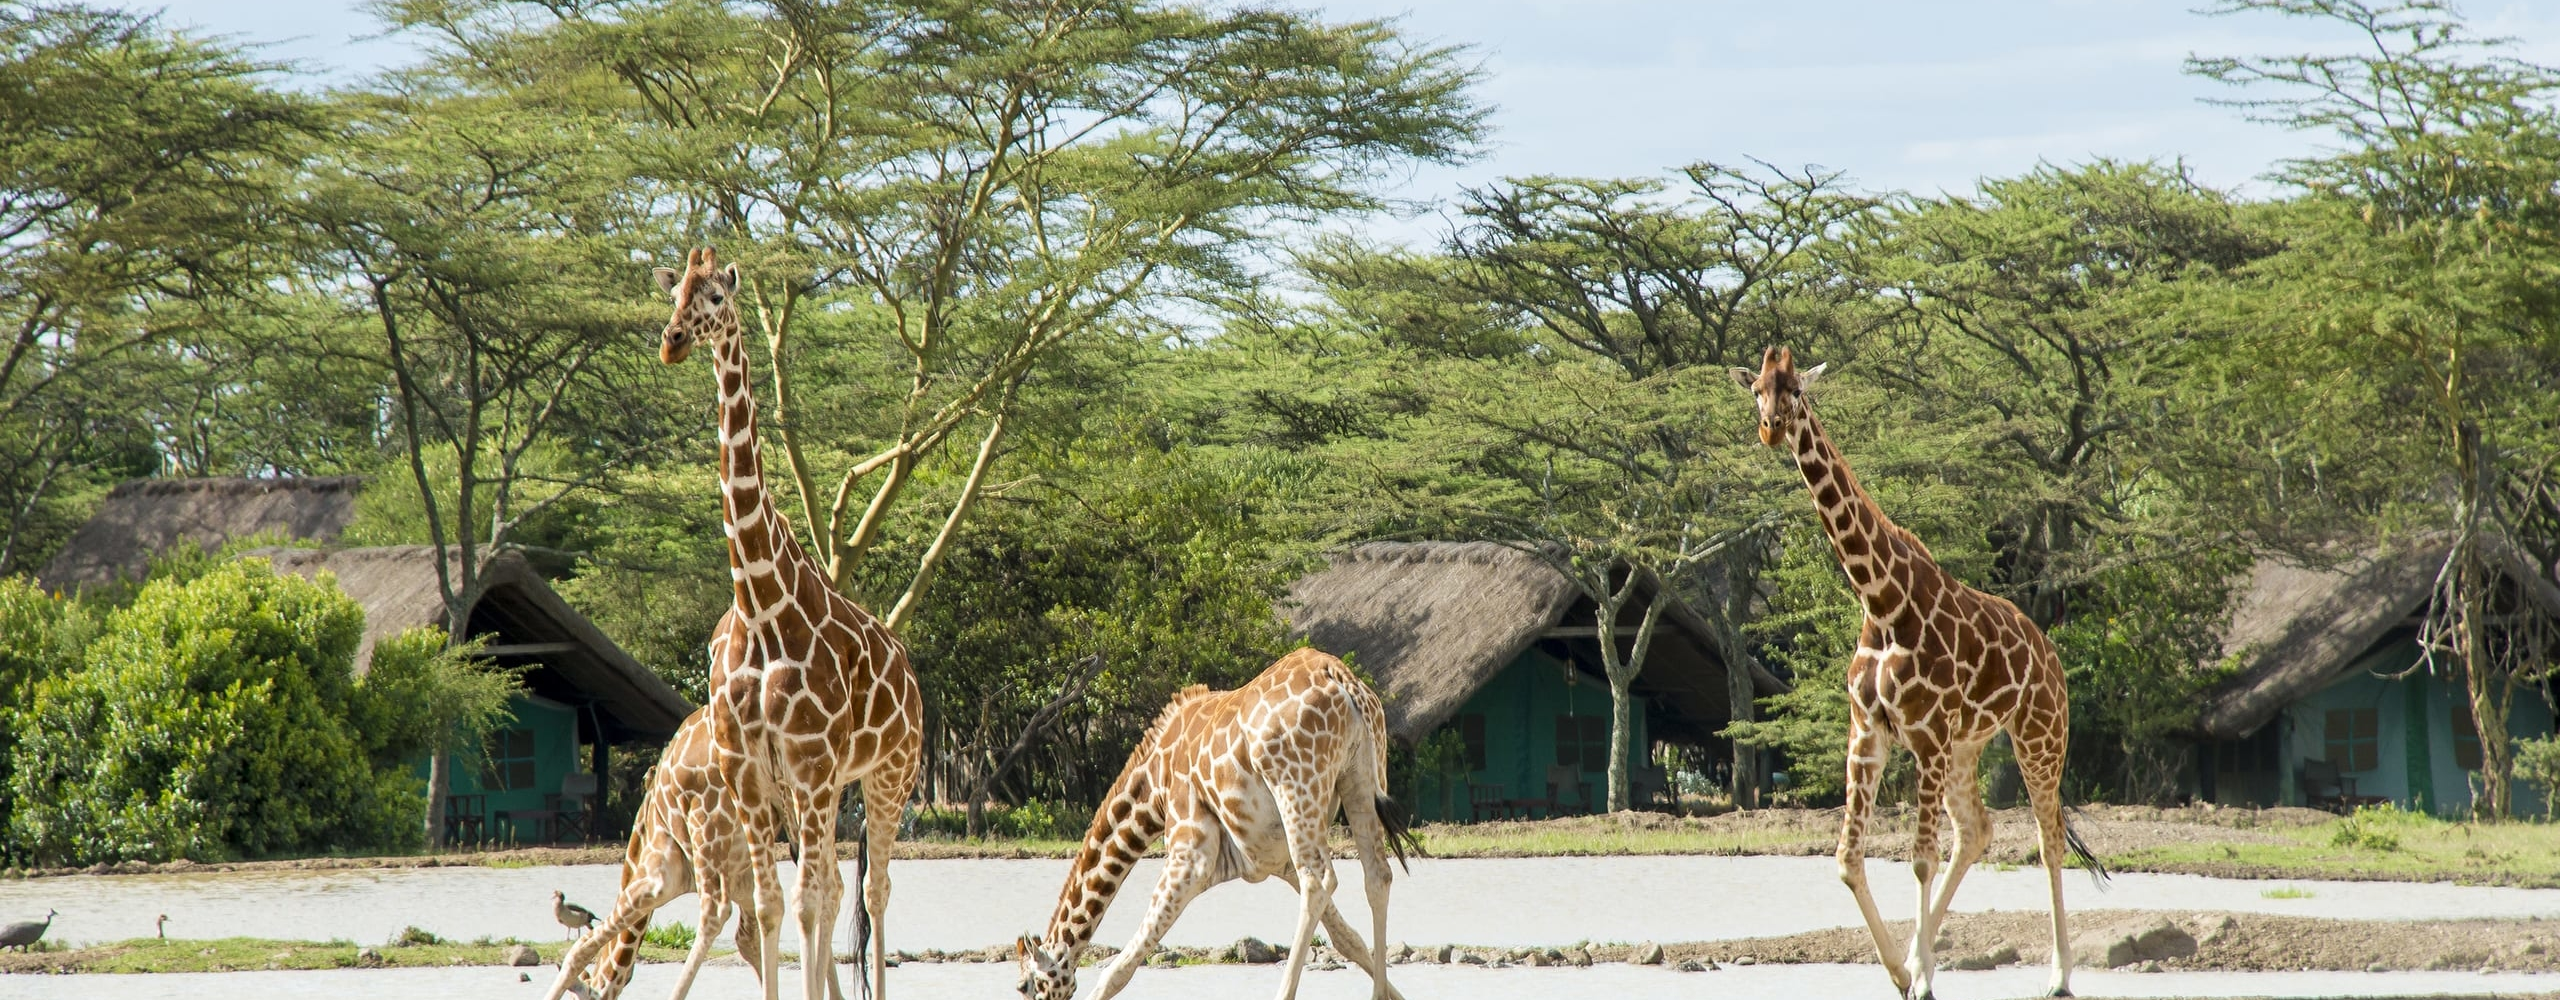 Sweetwaters Serena Camp takes its name from the waterhole around which it was built. © Serena Hotels